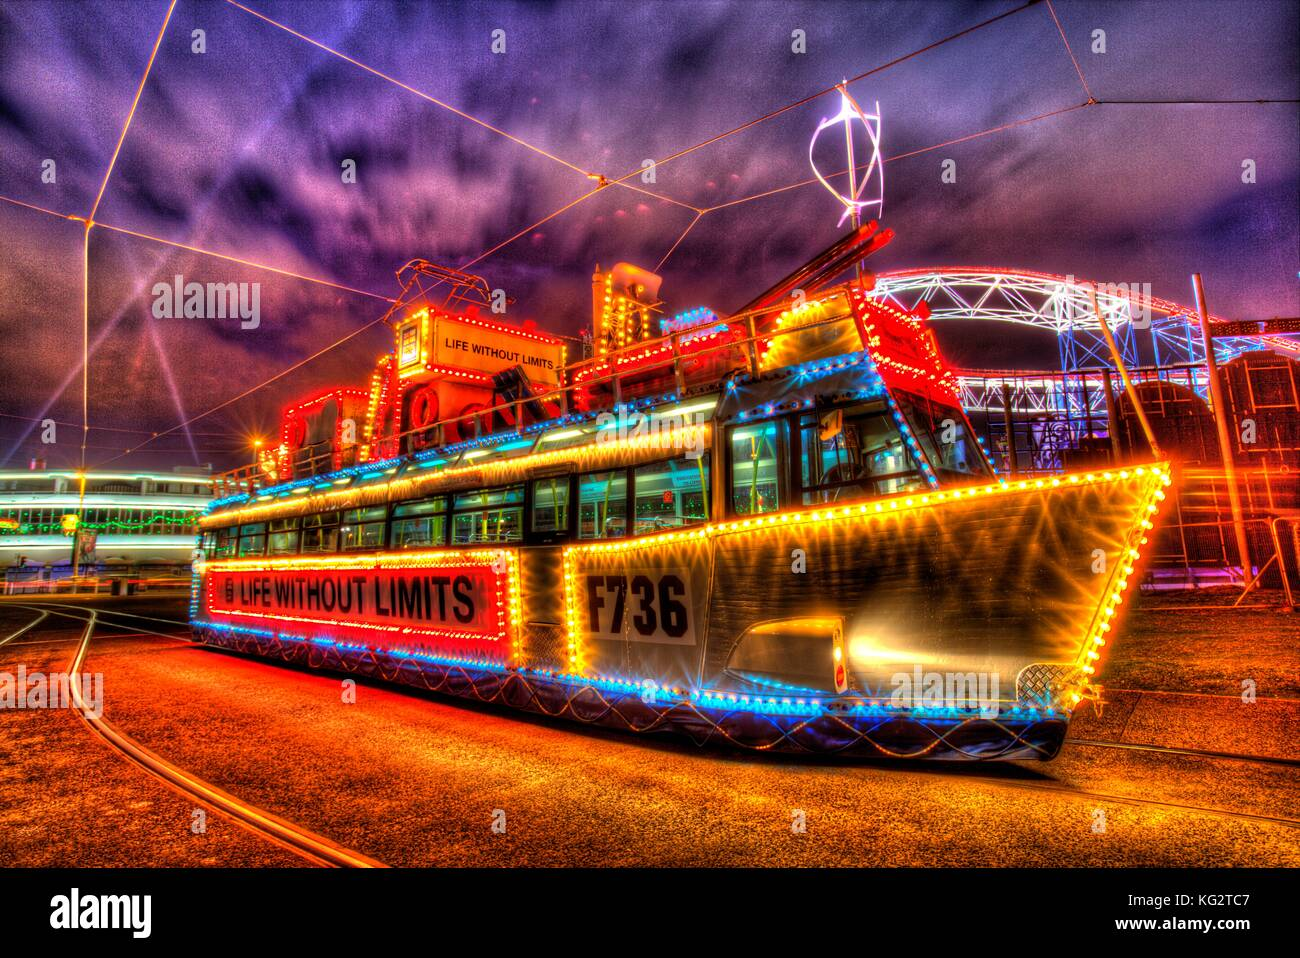 Town of Blackpool, England. Artistic night view of an illuminated tram dressed as a Royal Navy ship, during the Stock Photo